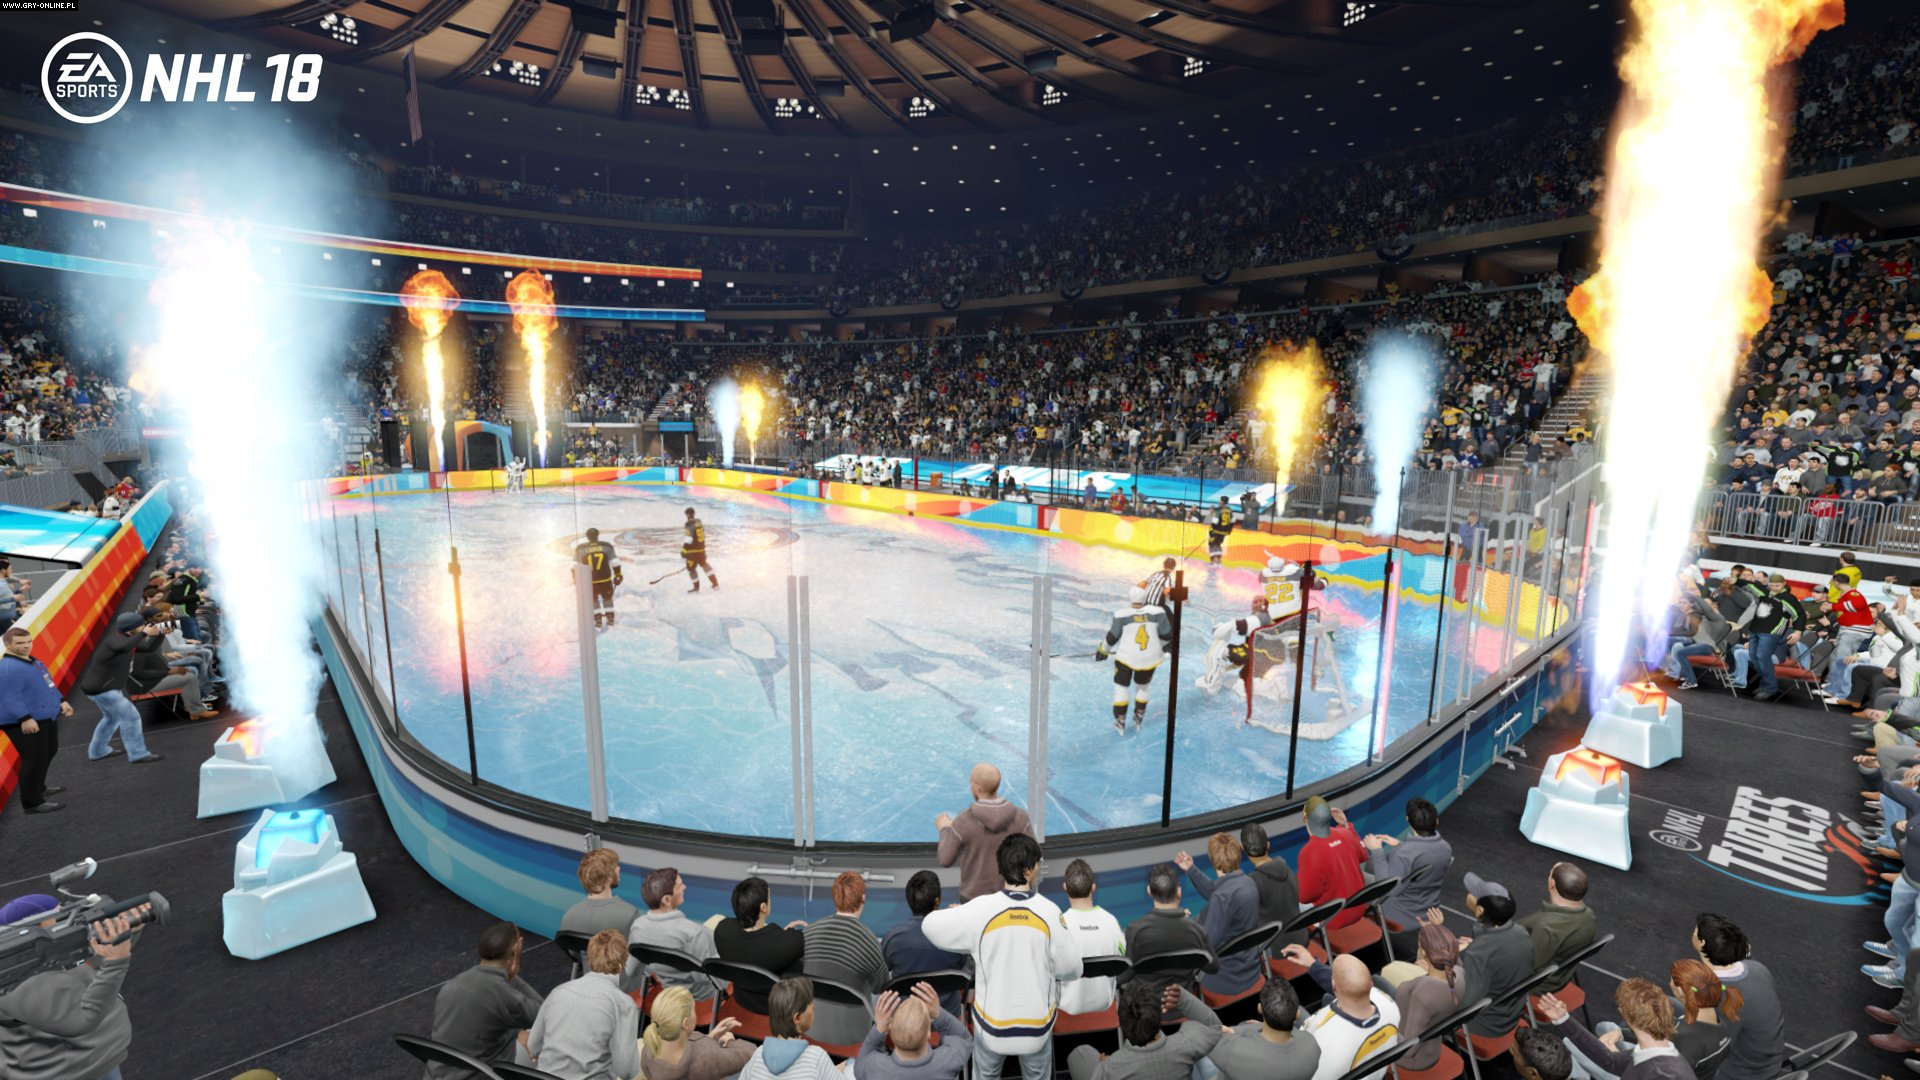 NHL 18 PS4, XONE Games Image 5/9, EA Sports, Electronic Arts Inc.